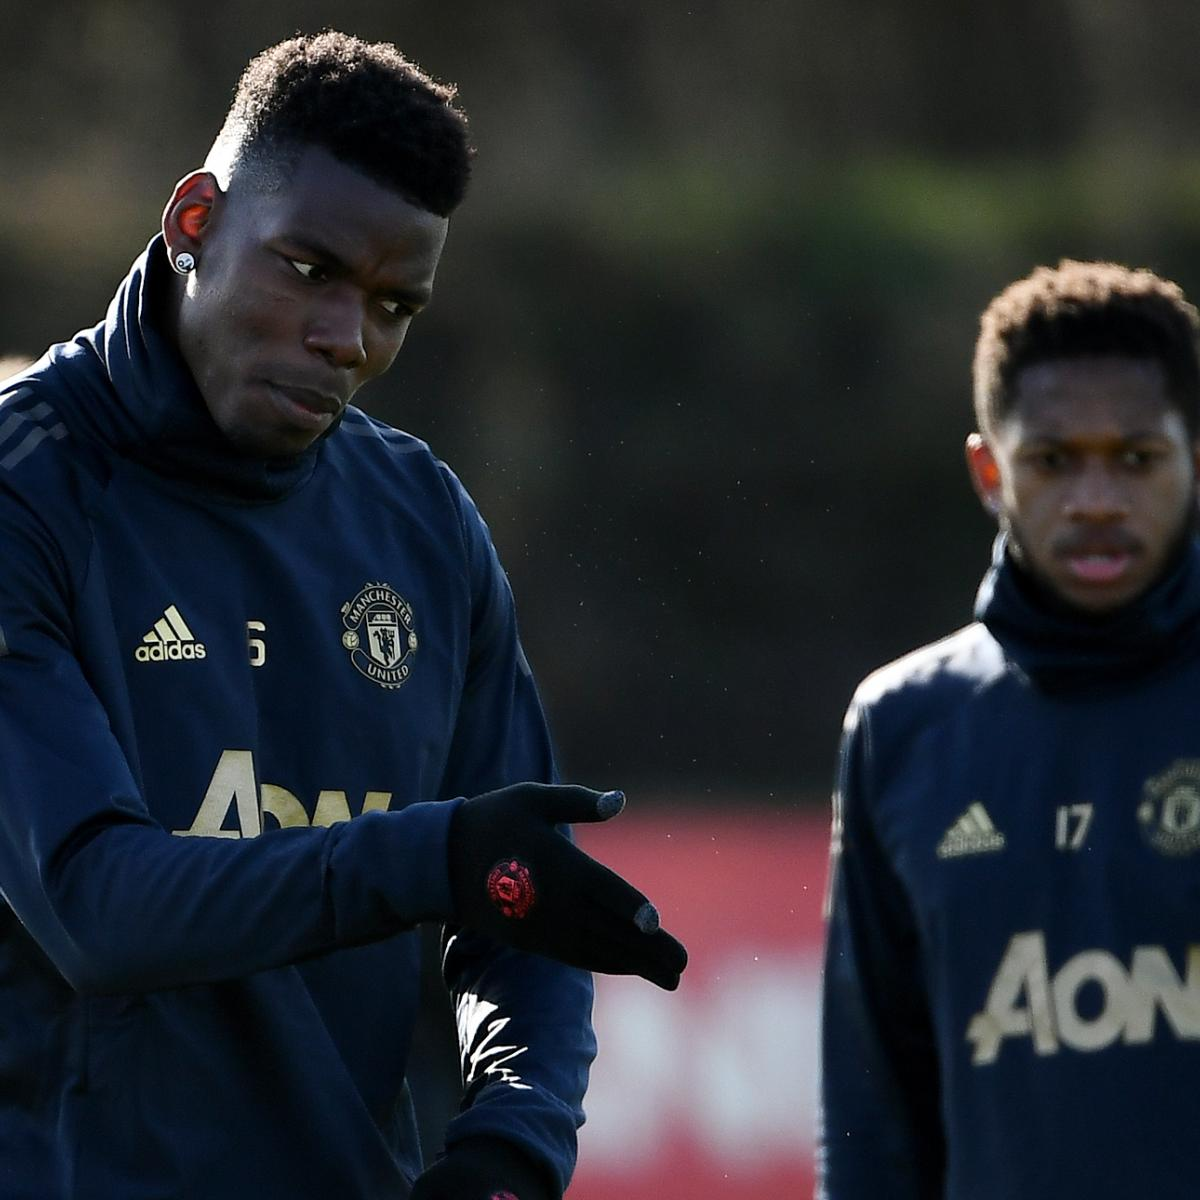 Psg Retain Champions League Favouritism Ahead Of: Video: Watch Manchester United Vs. PSG Hype Tape Ahead Of